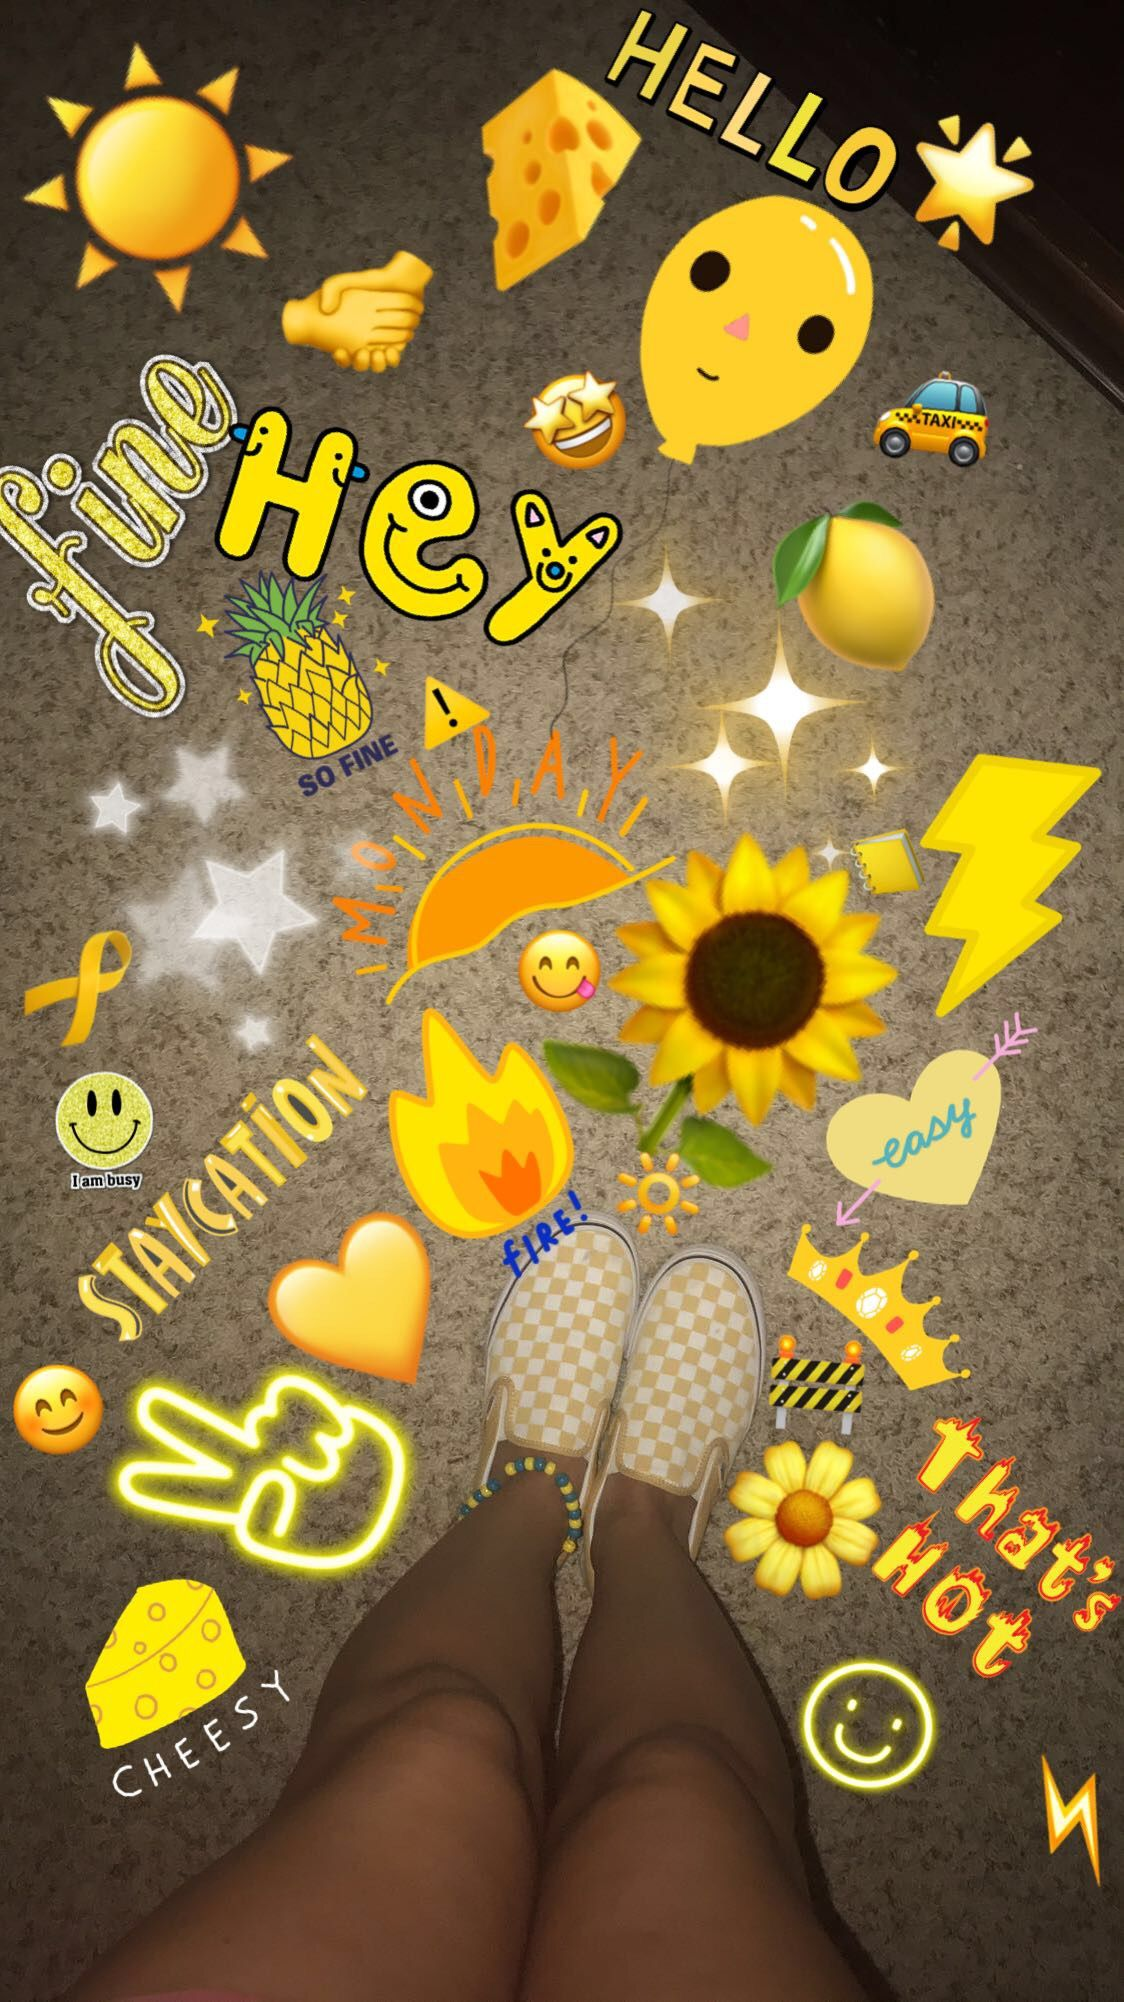 Pin by Keeleyparton on Yellow Emoji pictures, Art hoe